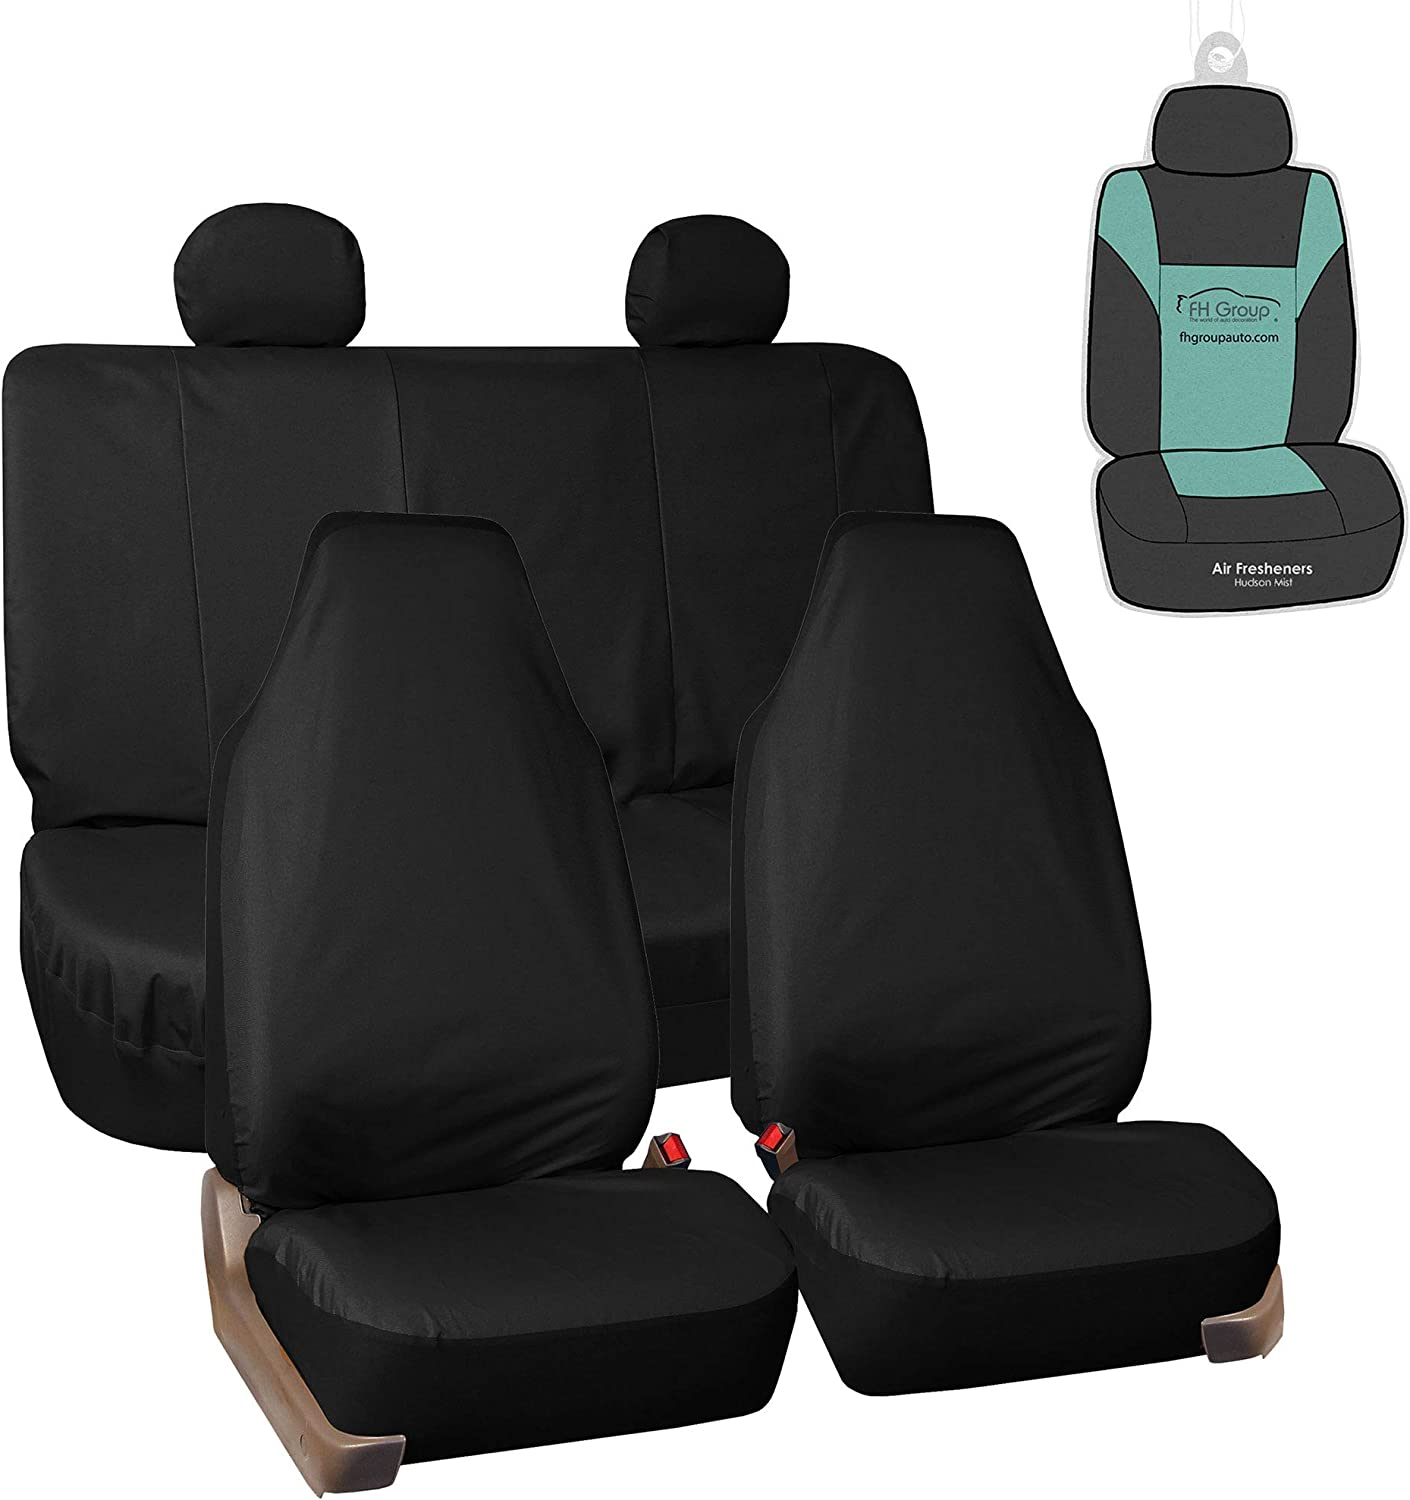 FH Group FB113114 Rugged Oxford Seat Covers (Black) Full Set with Gift - Universal Fit for Trucks, SUVs, and Vans